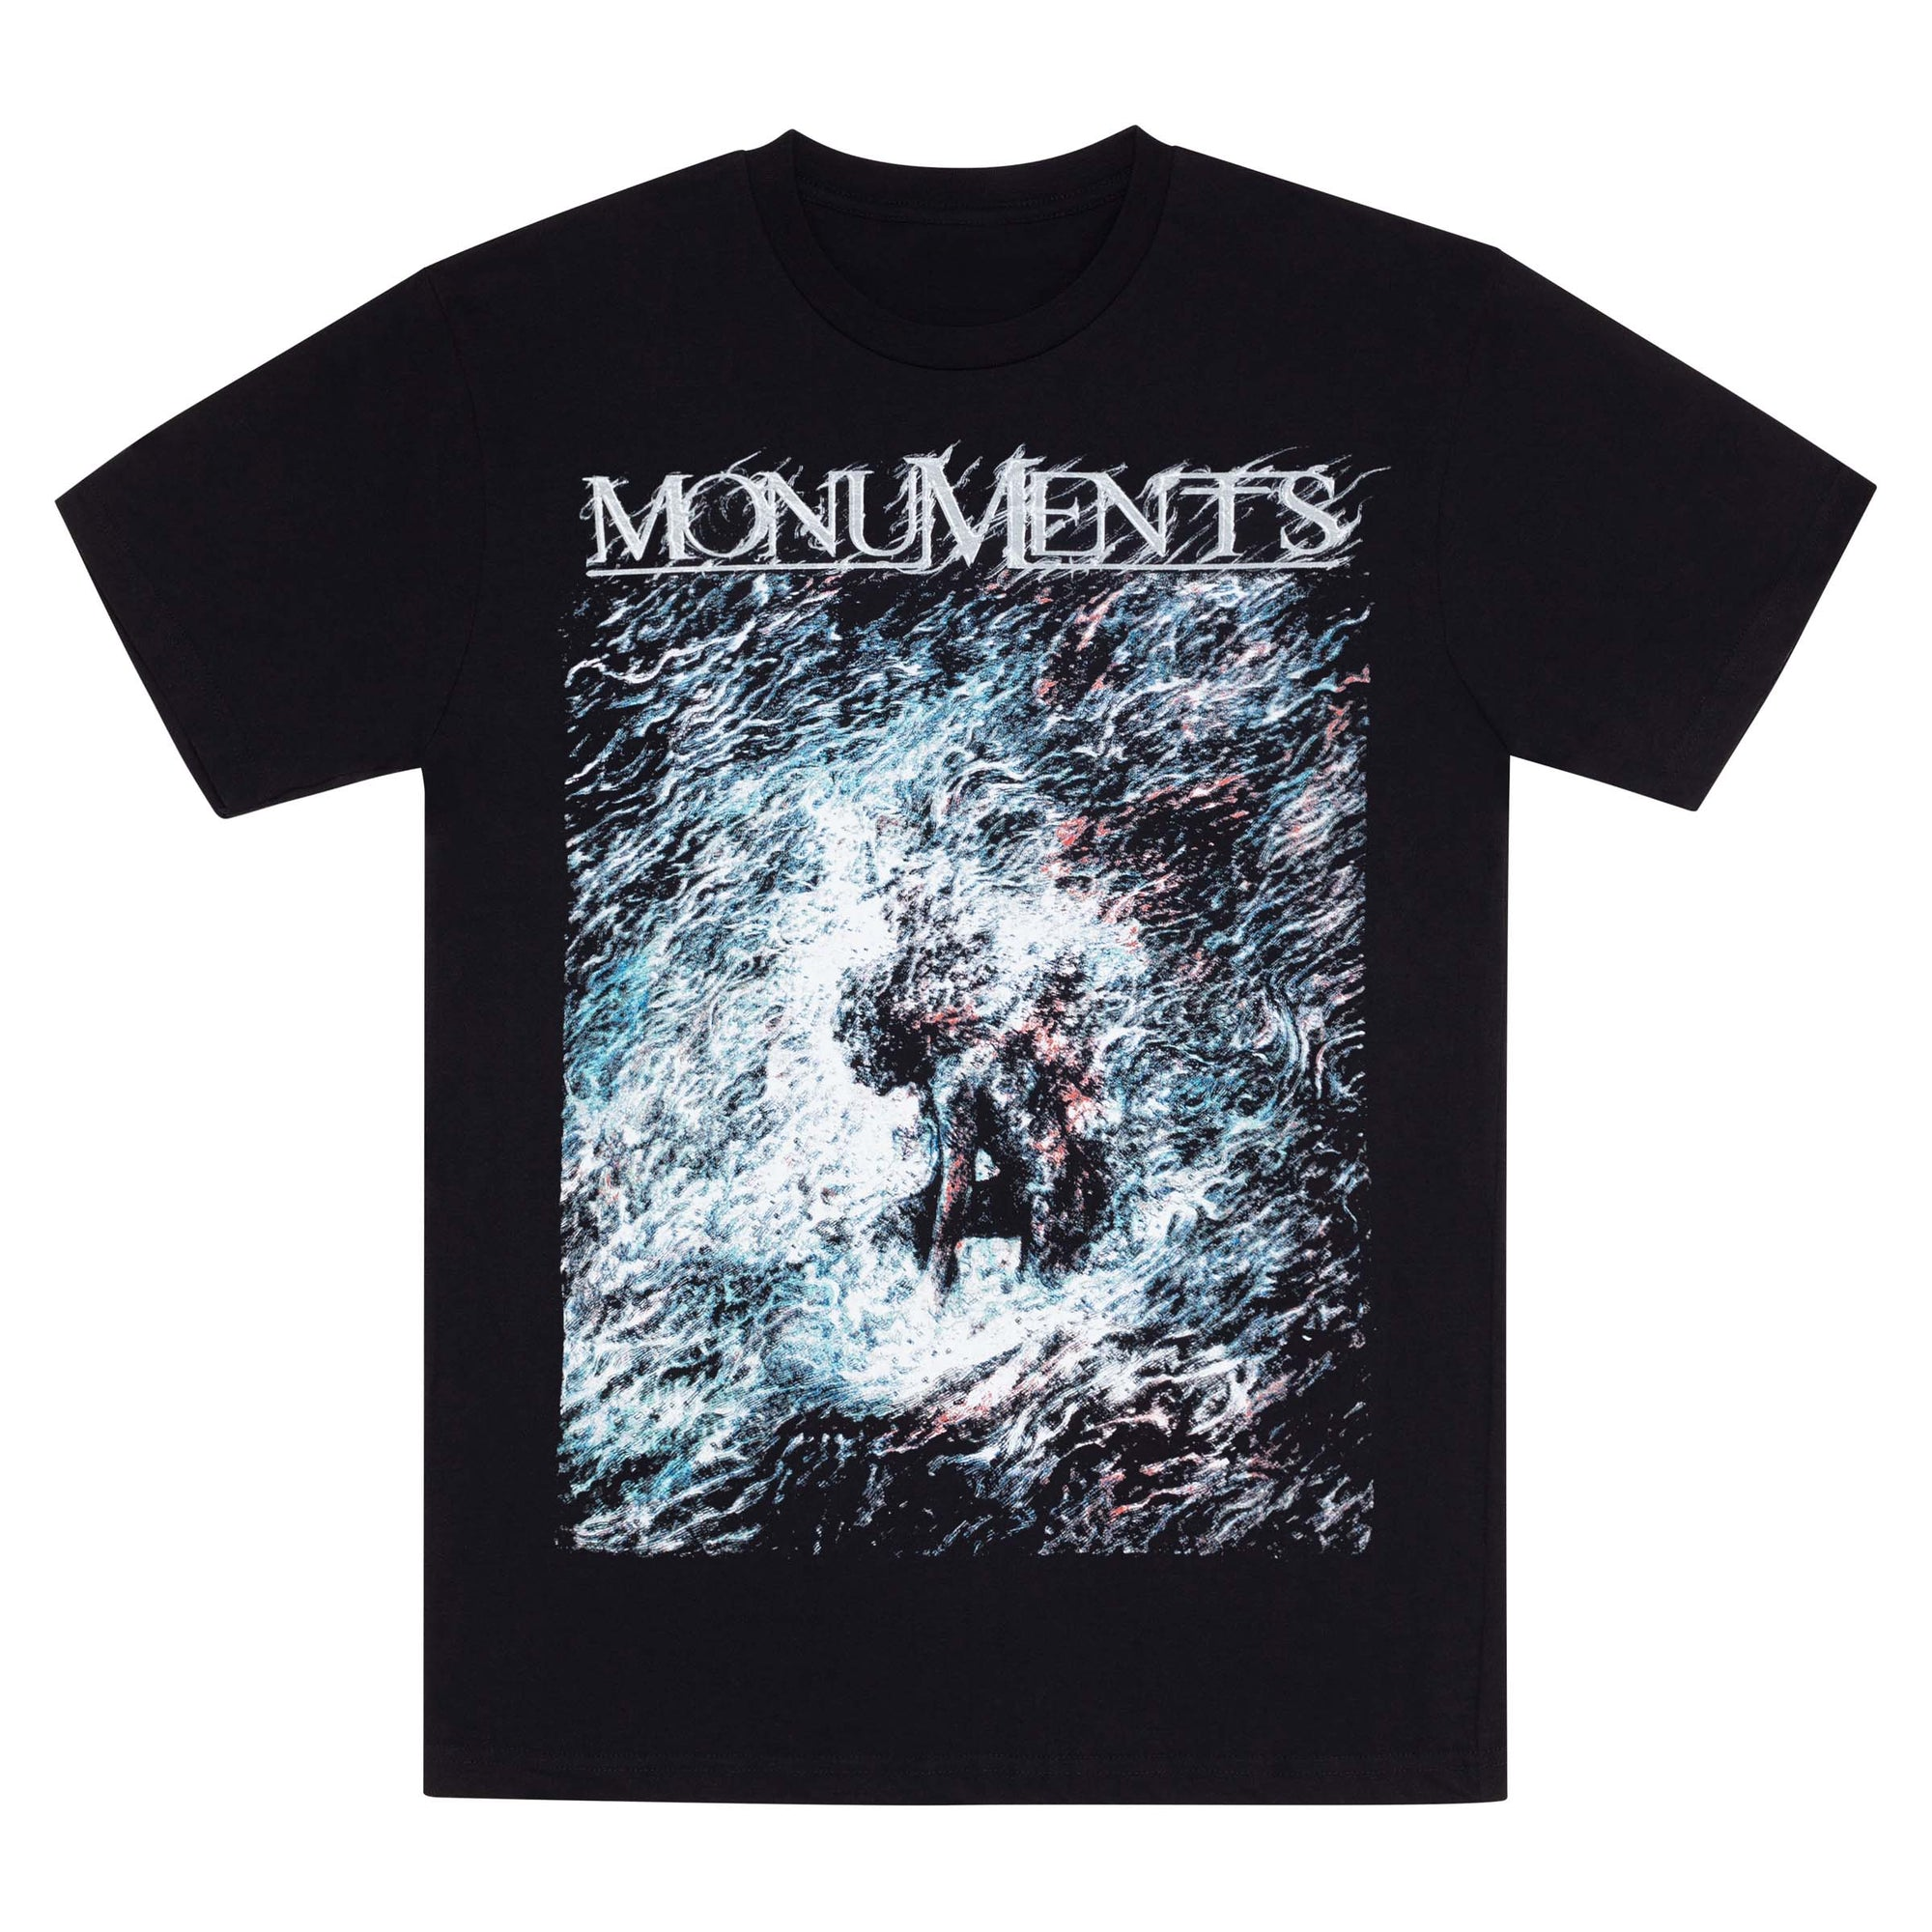 MONUMENTS // PHRONESIS T-SHIRT - Wild Thing Records